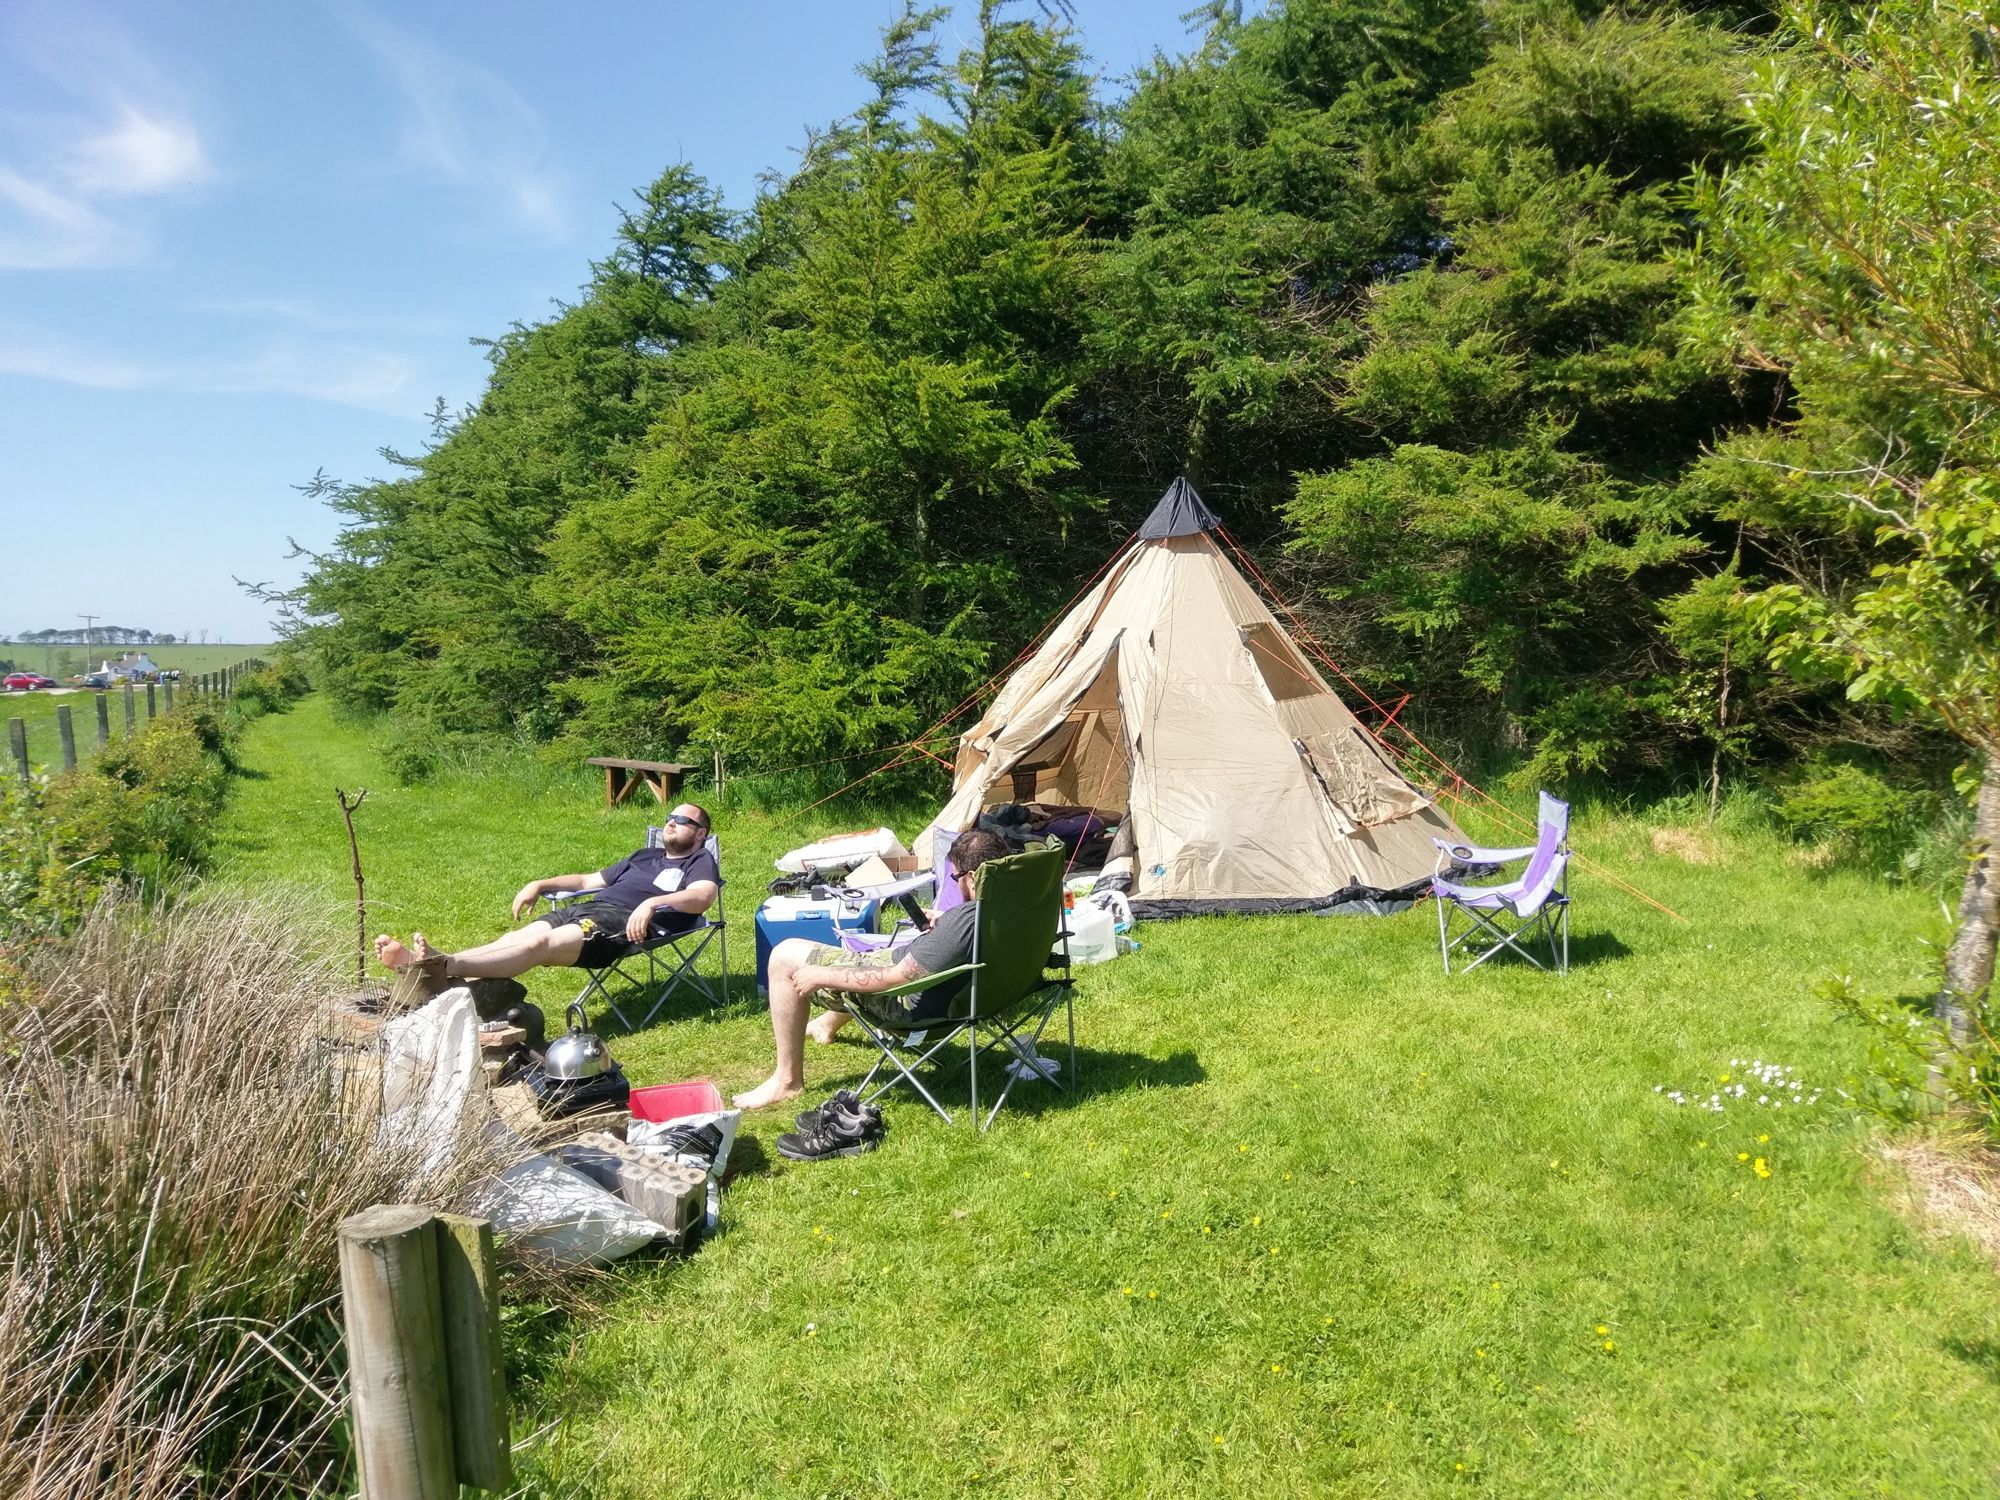 Campsites in dumfries and galloway - Swimming pools in dumfries and galloway ...